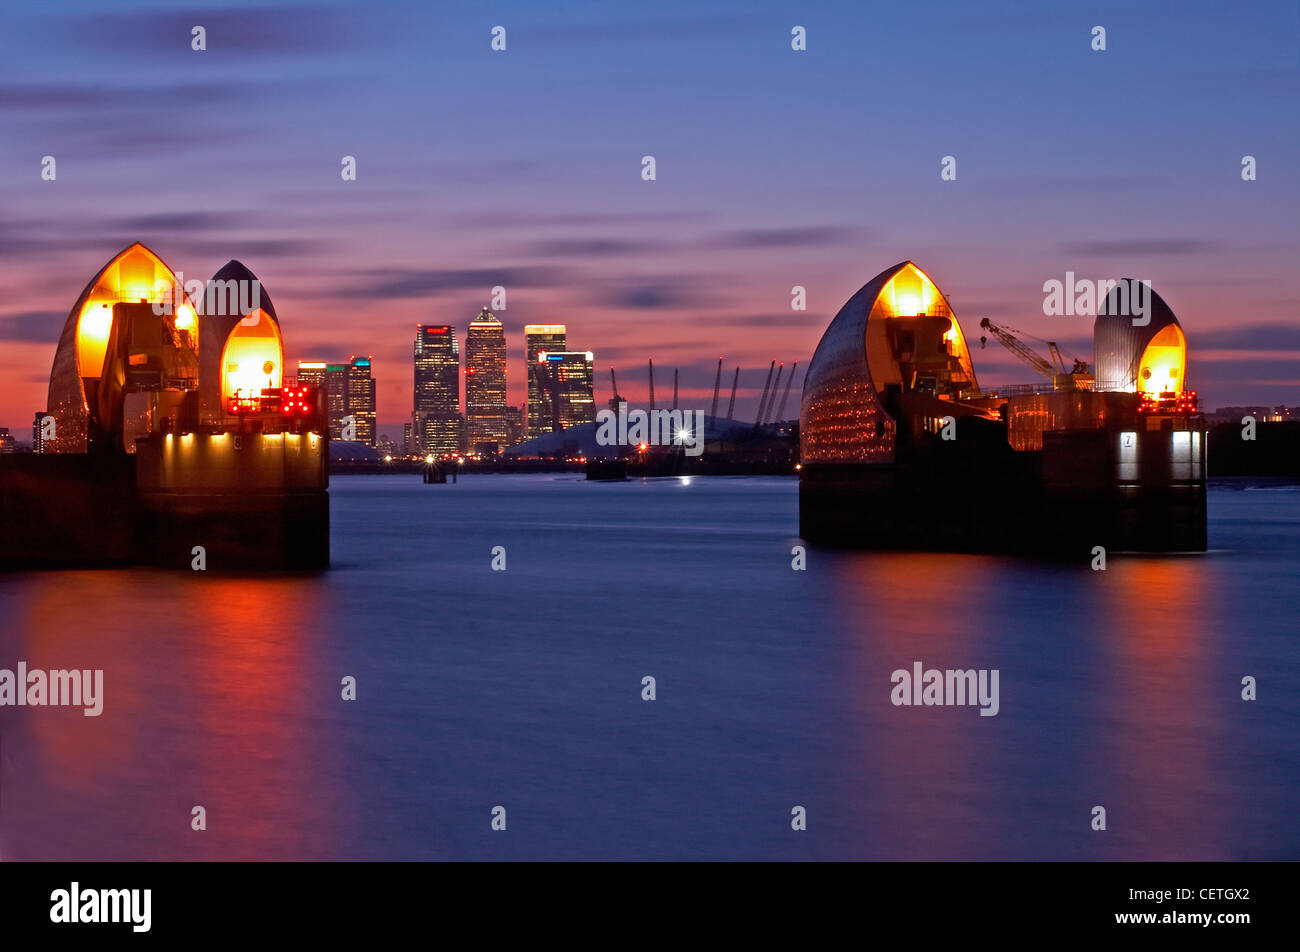 Thames Barrier at dusk. Built in 1984 as London's flood defence, the 1716 feet width of the river is divided - Stock Image